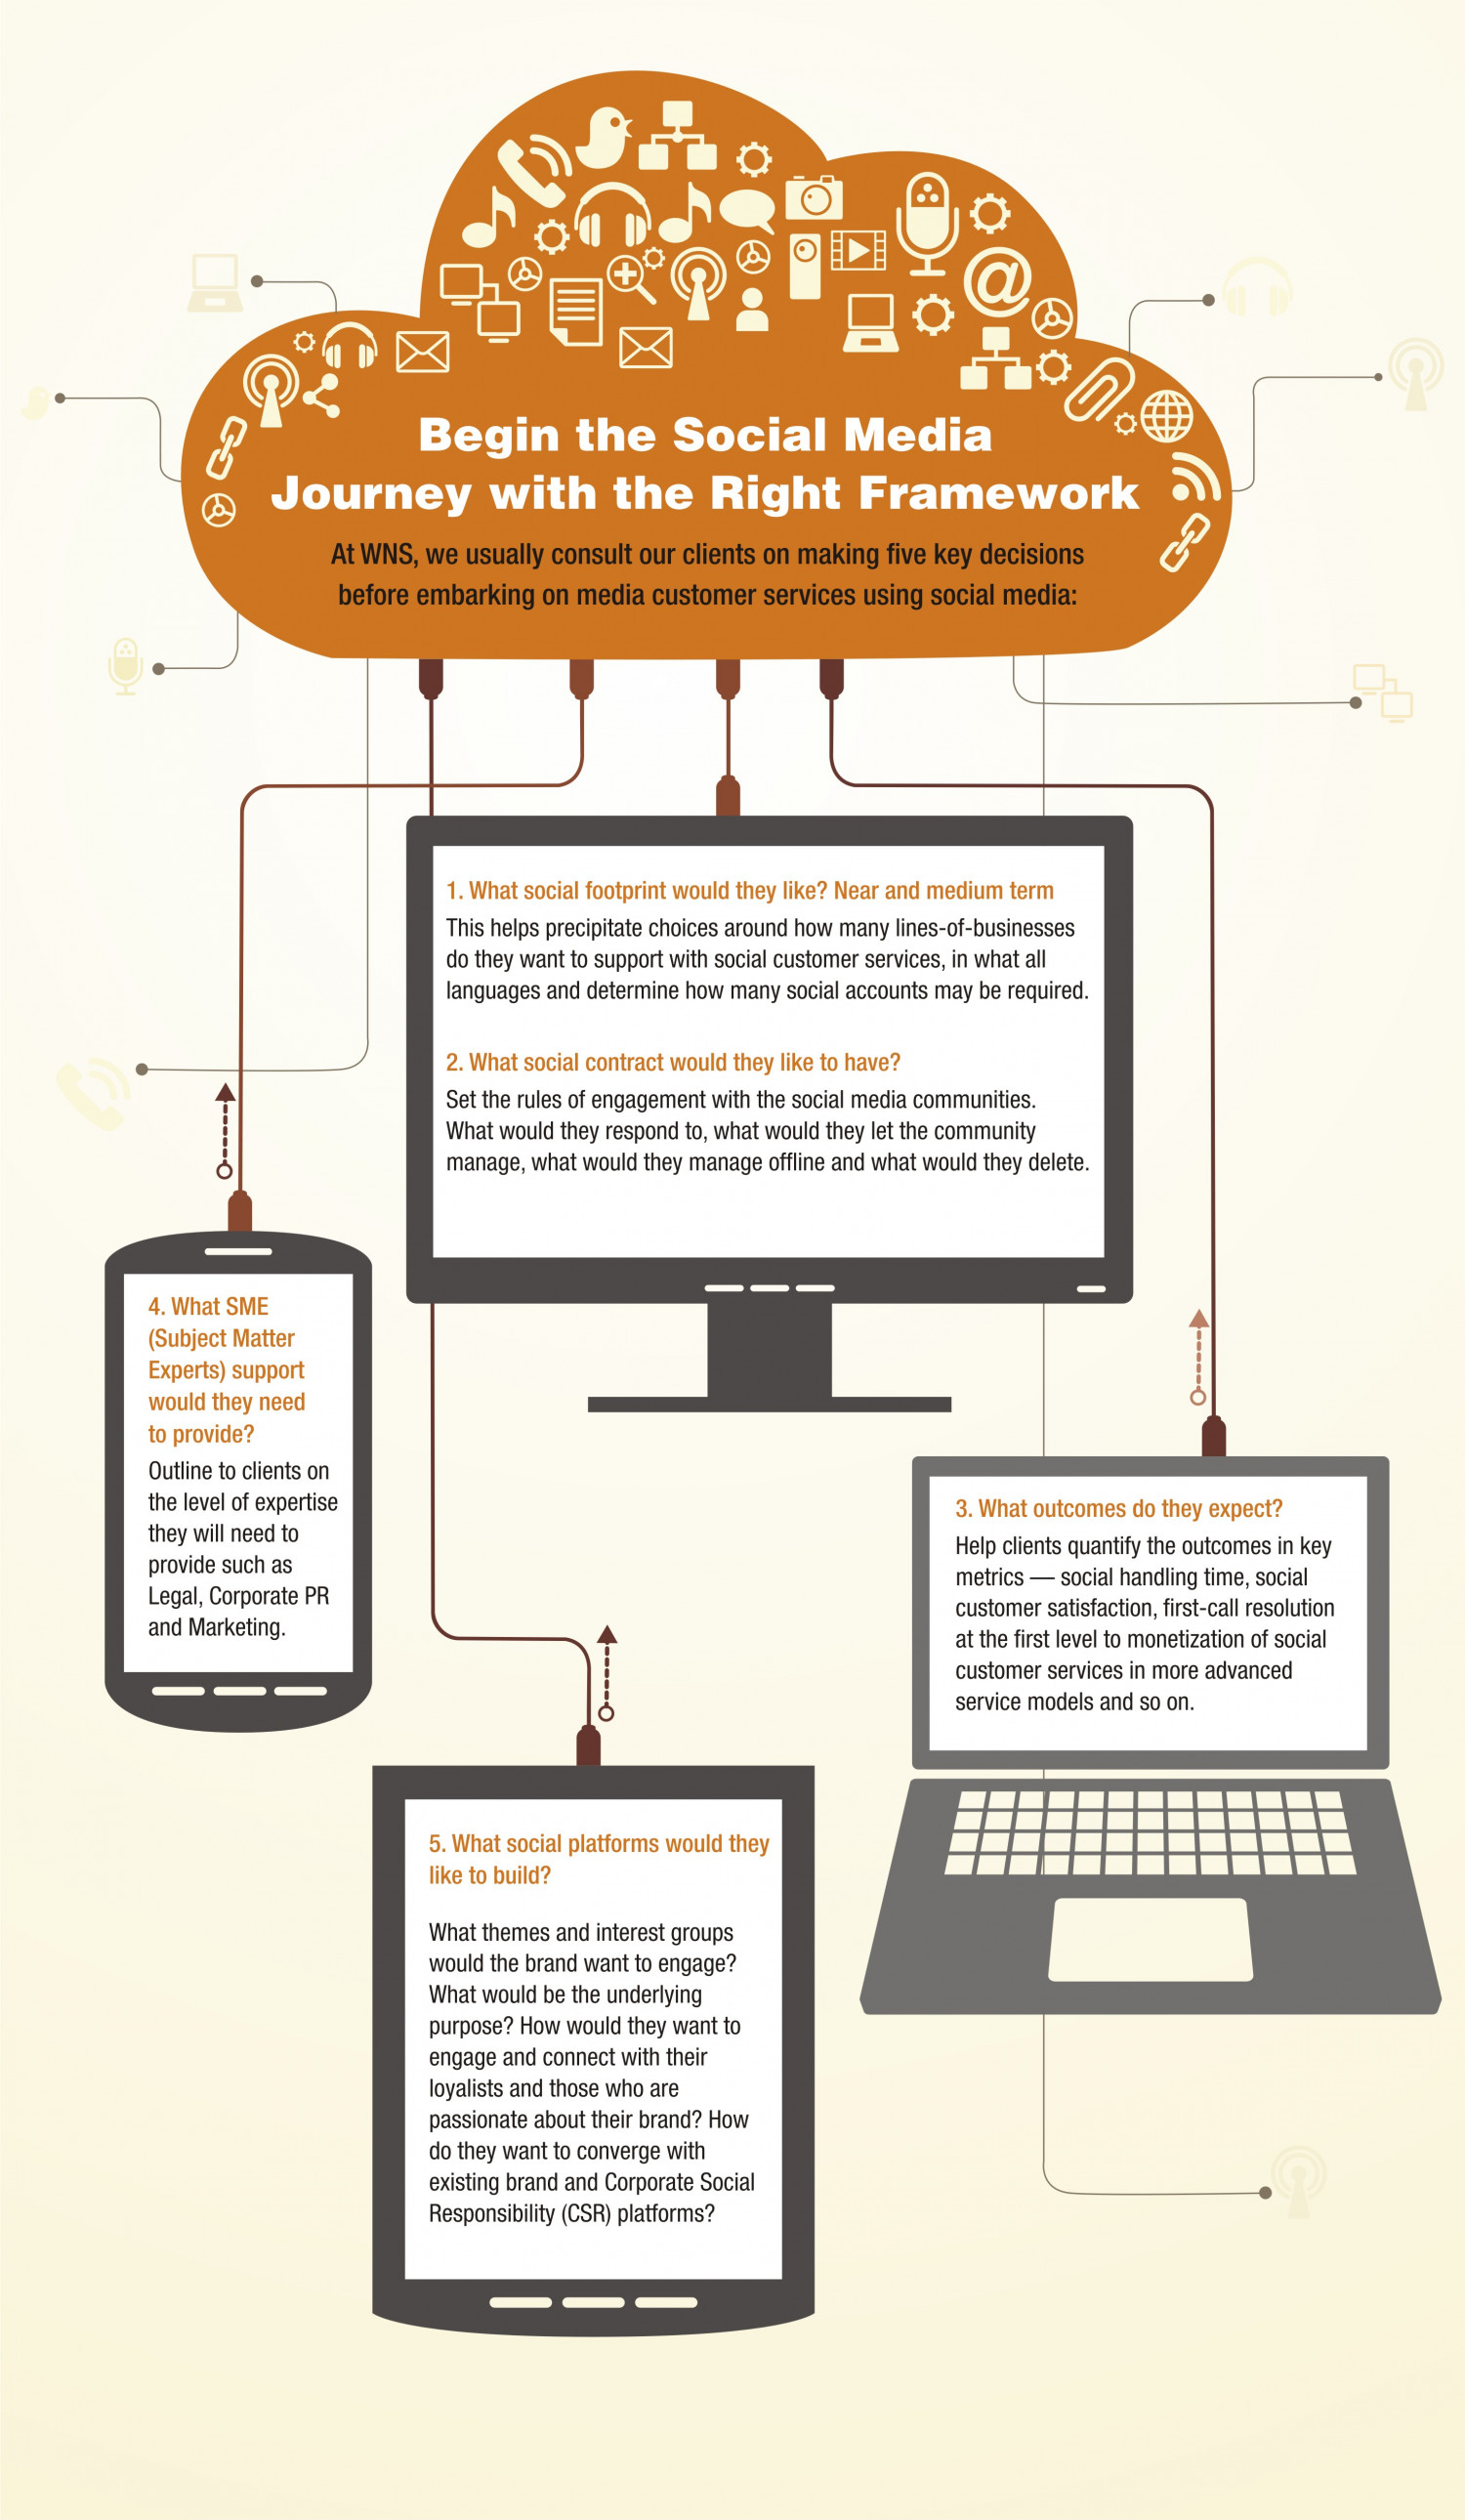 Customer service using social media Infographic